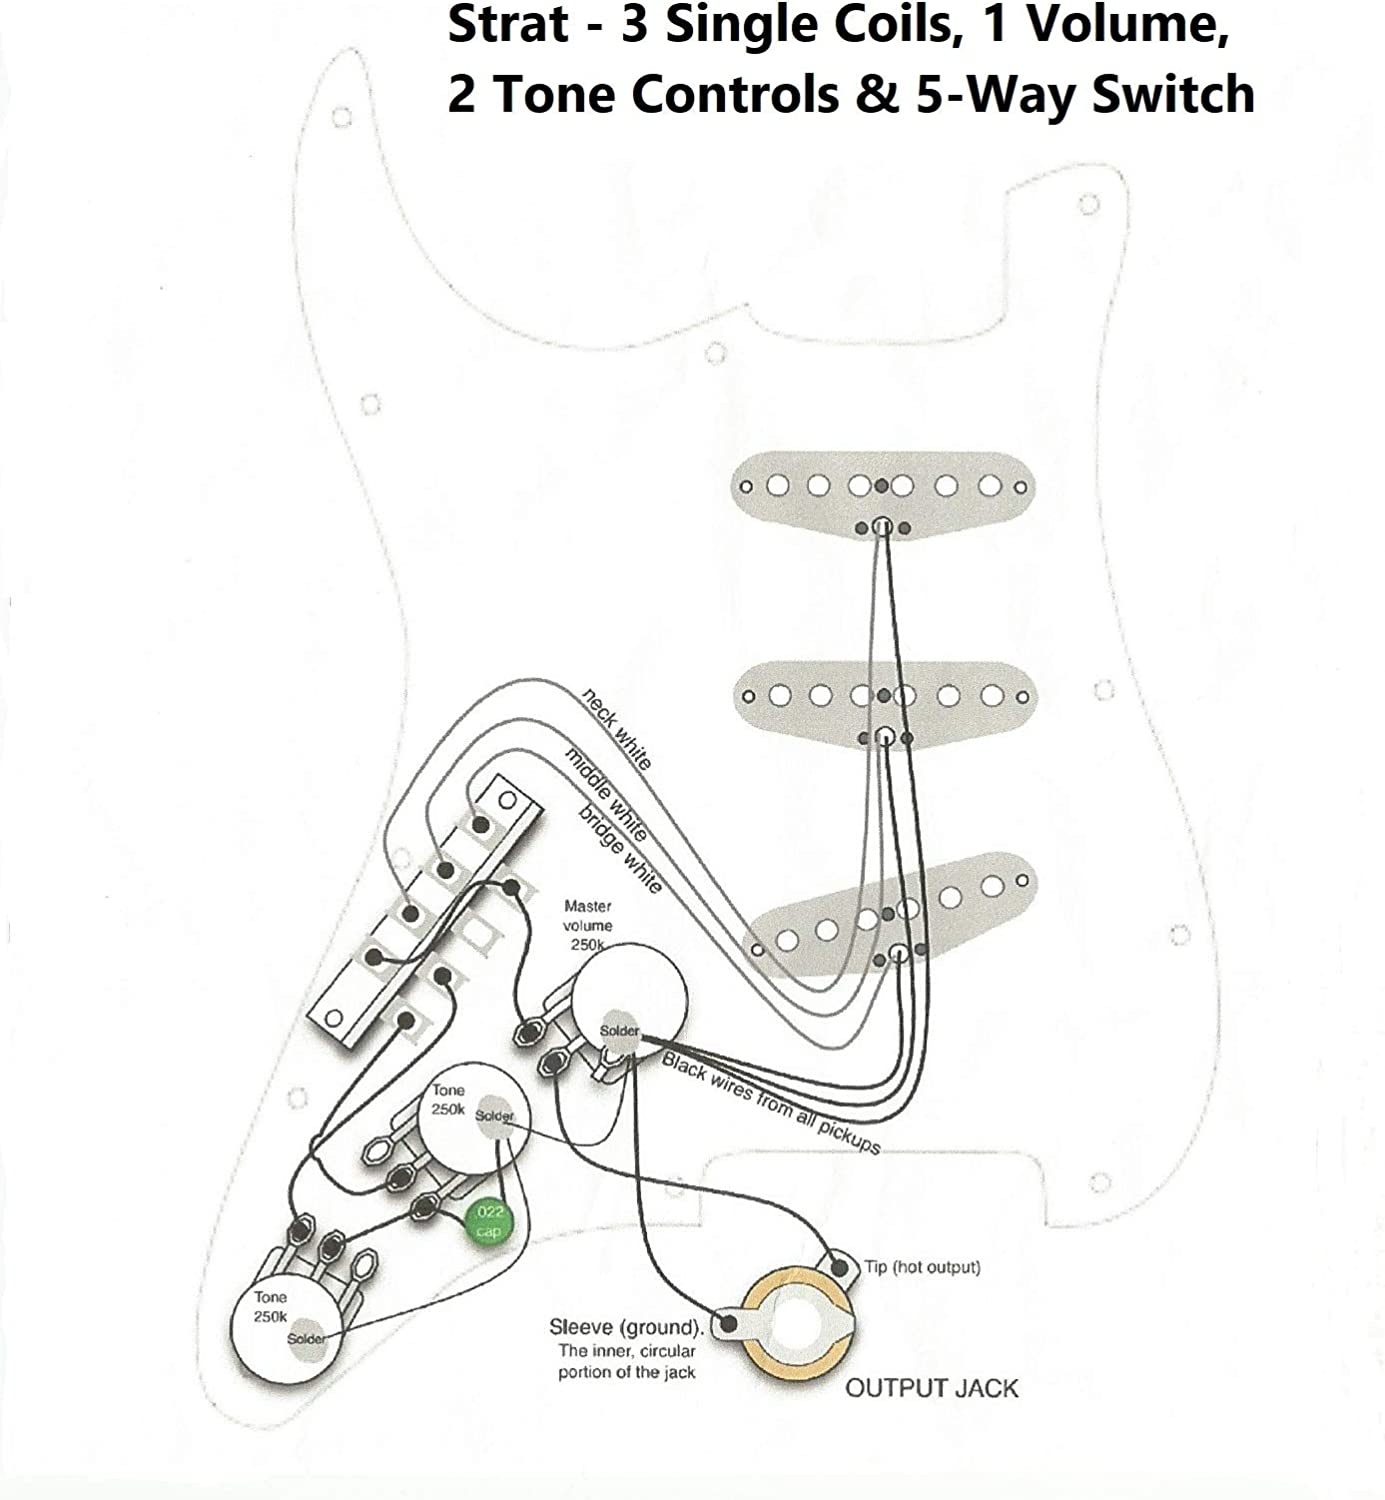 Fender Mim Stratocaster Wiring Diagram - Case Ingersoll 224 Wiring Diagram  1996chevy.au-delice-limousin.frBege Wiring Diagram Full Edition